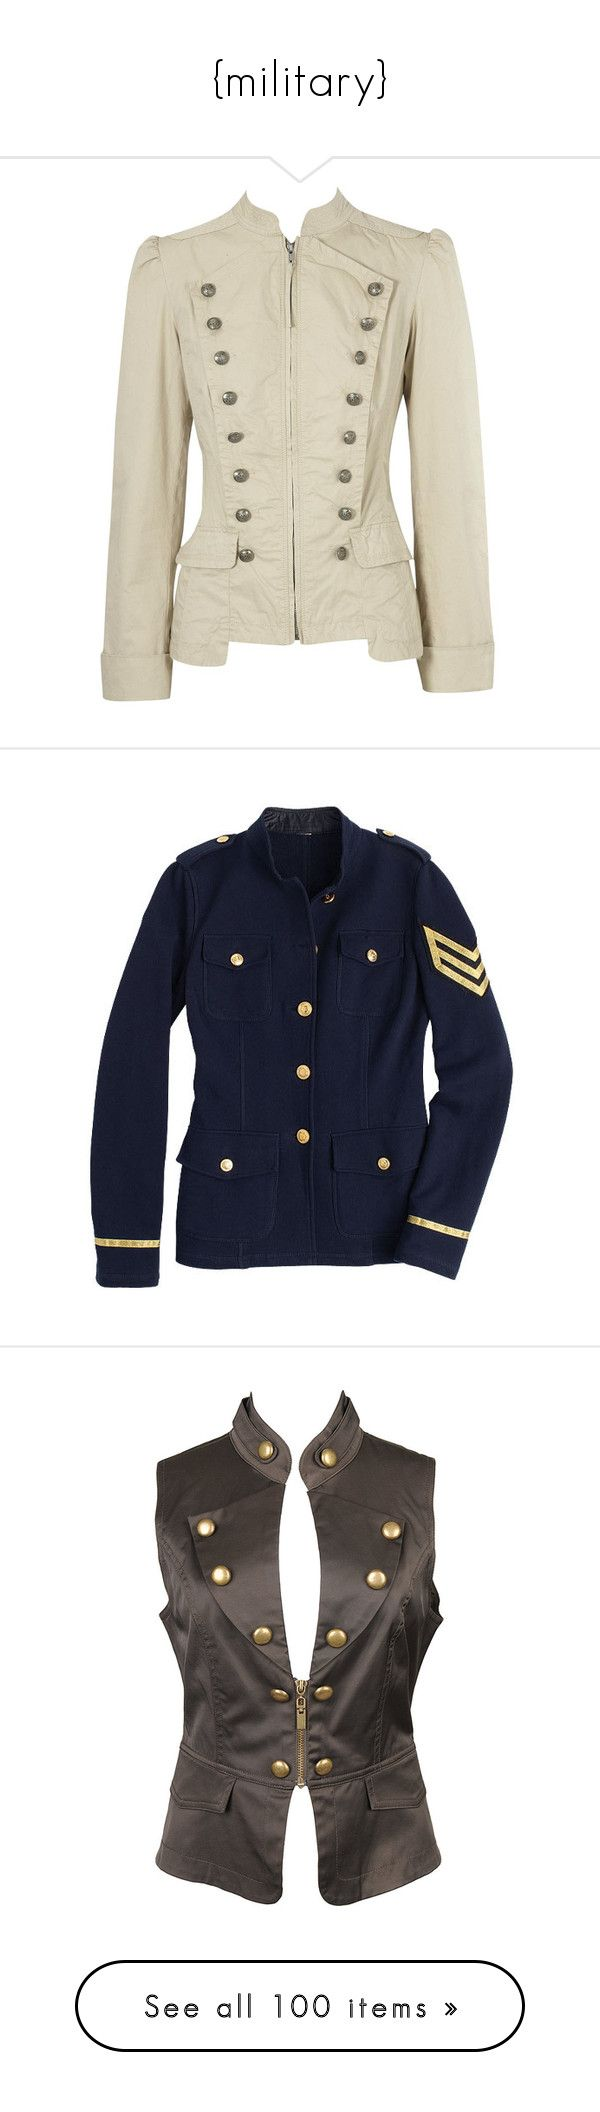 """""""{military}"""" by toxicretrogirl ❤ liked on Polyvore featuring outerwear, coats, jackets, casacos, military, military style coat, oasis coats, military coat, brown coat and tops"""